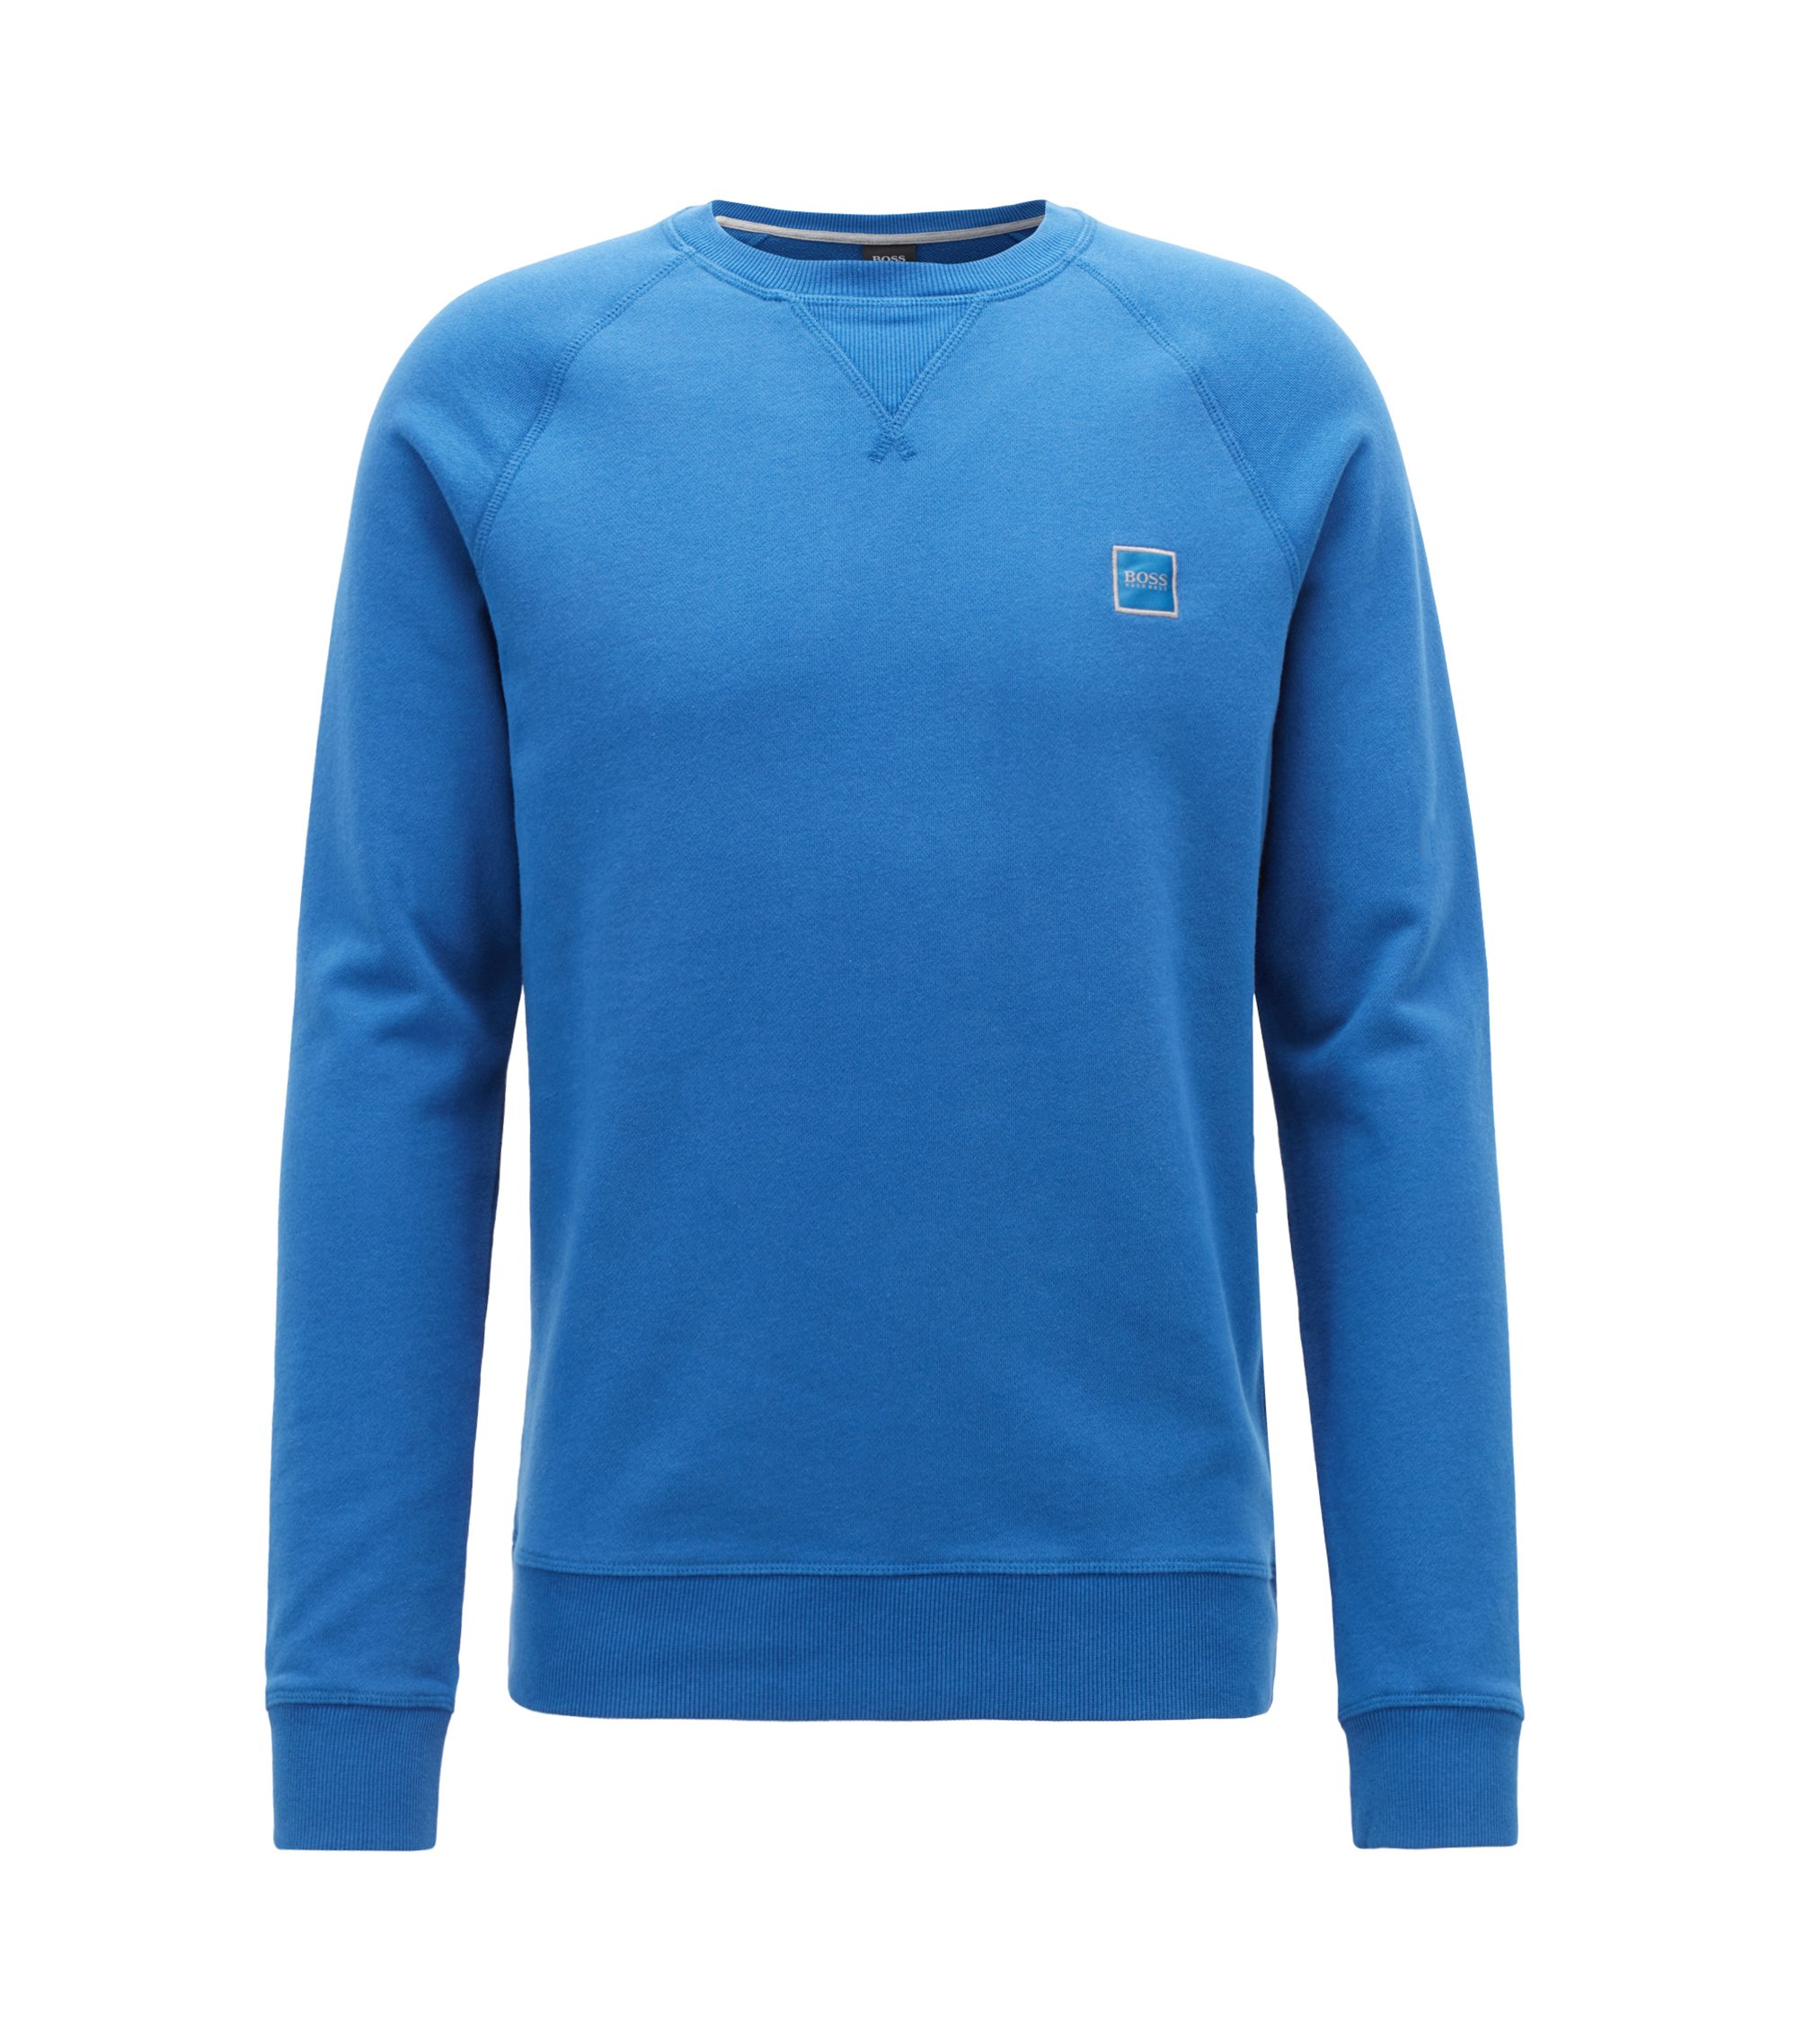 French-terry sweatshirt with logo patch, Open Blue